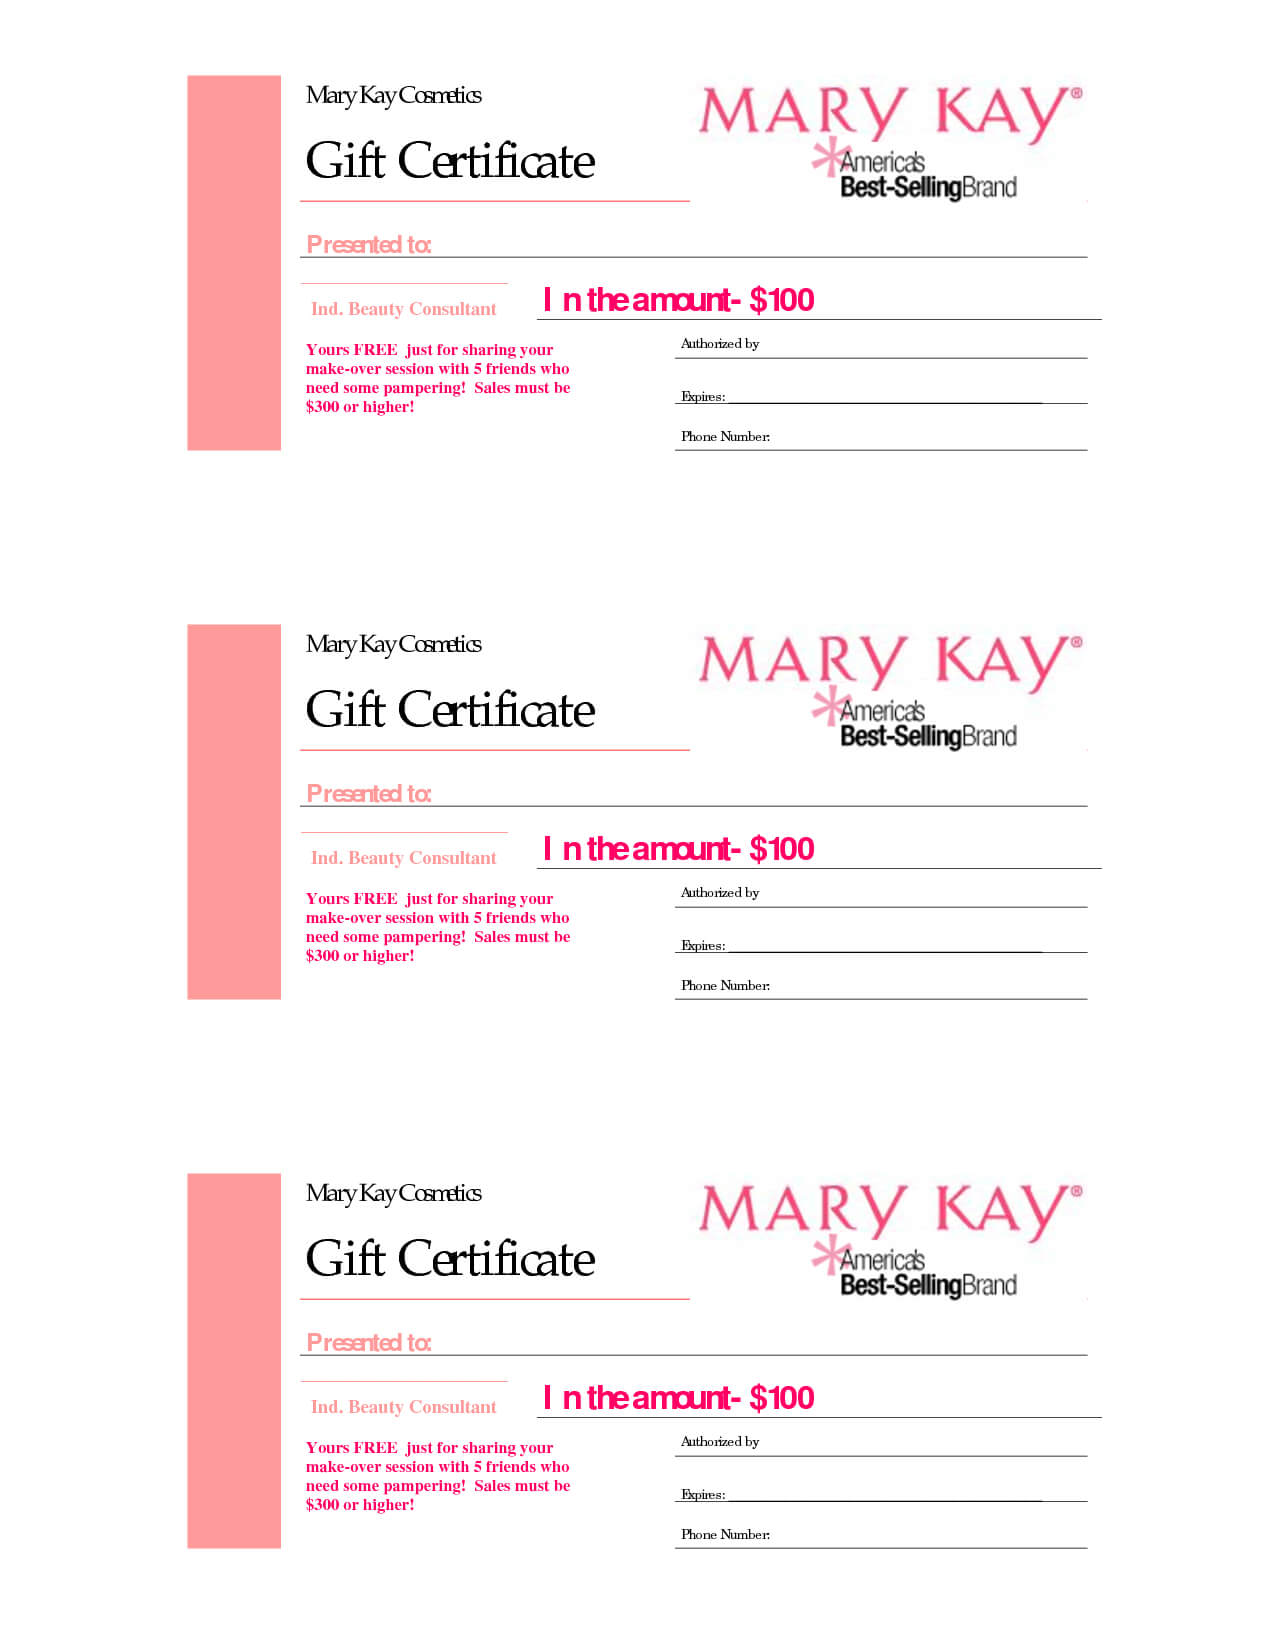 Gift Certificates | Mary Kay Gift Certificate! Checo That In Mary Kay Gift Certificate Template